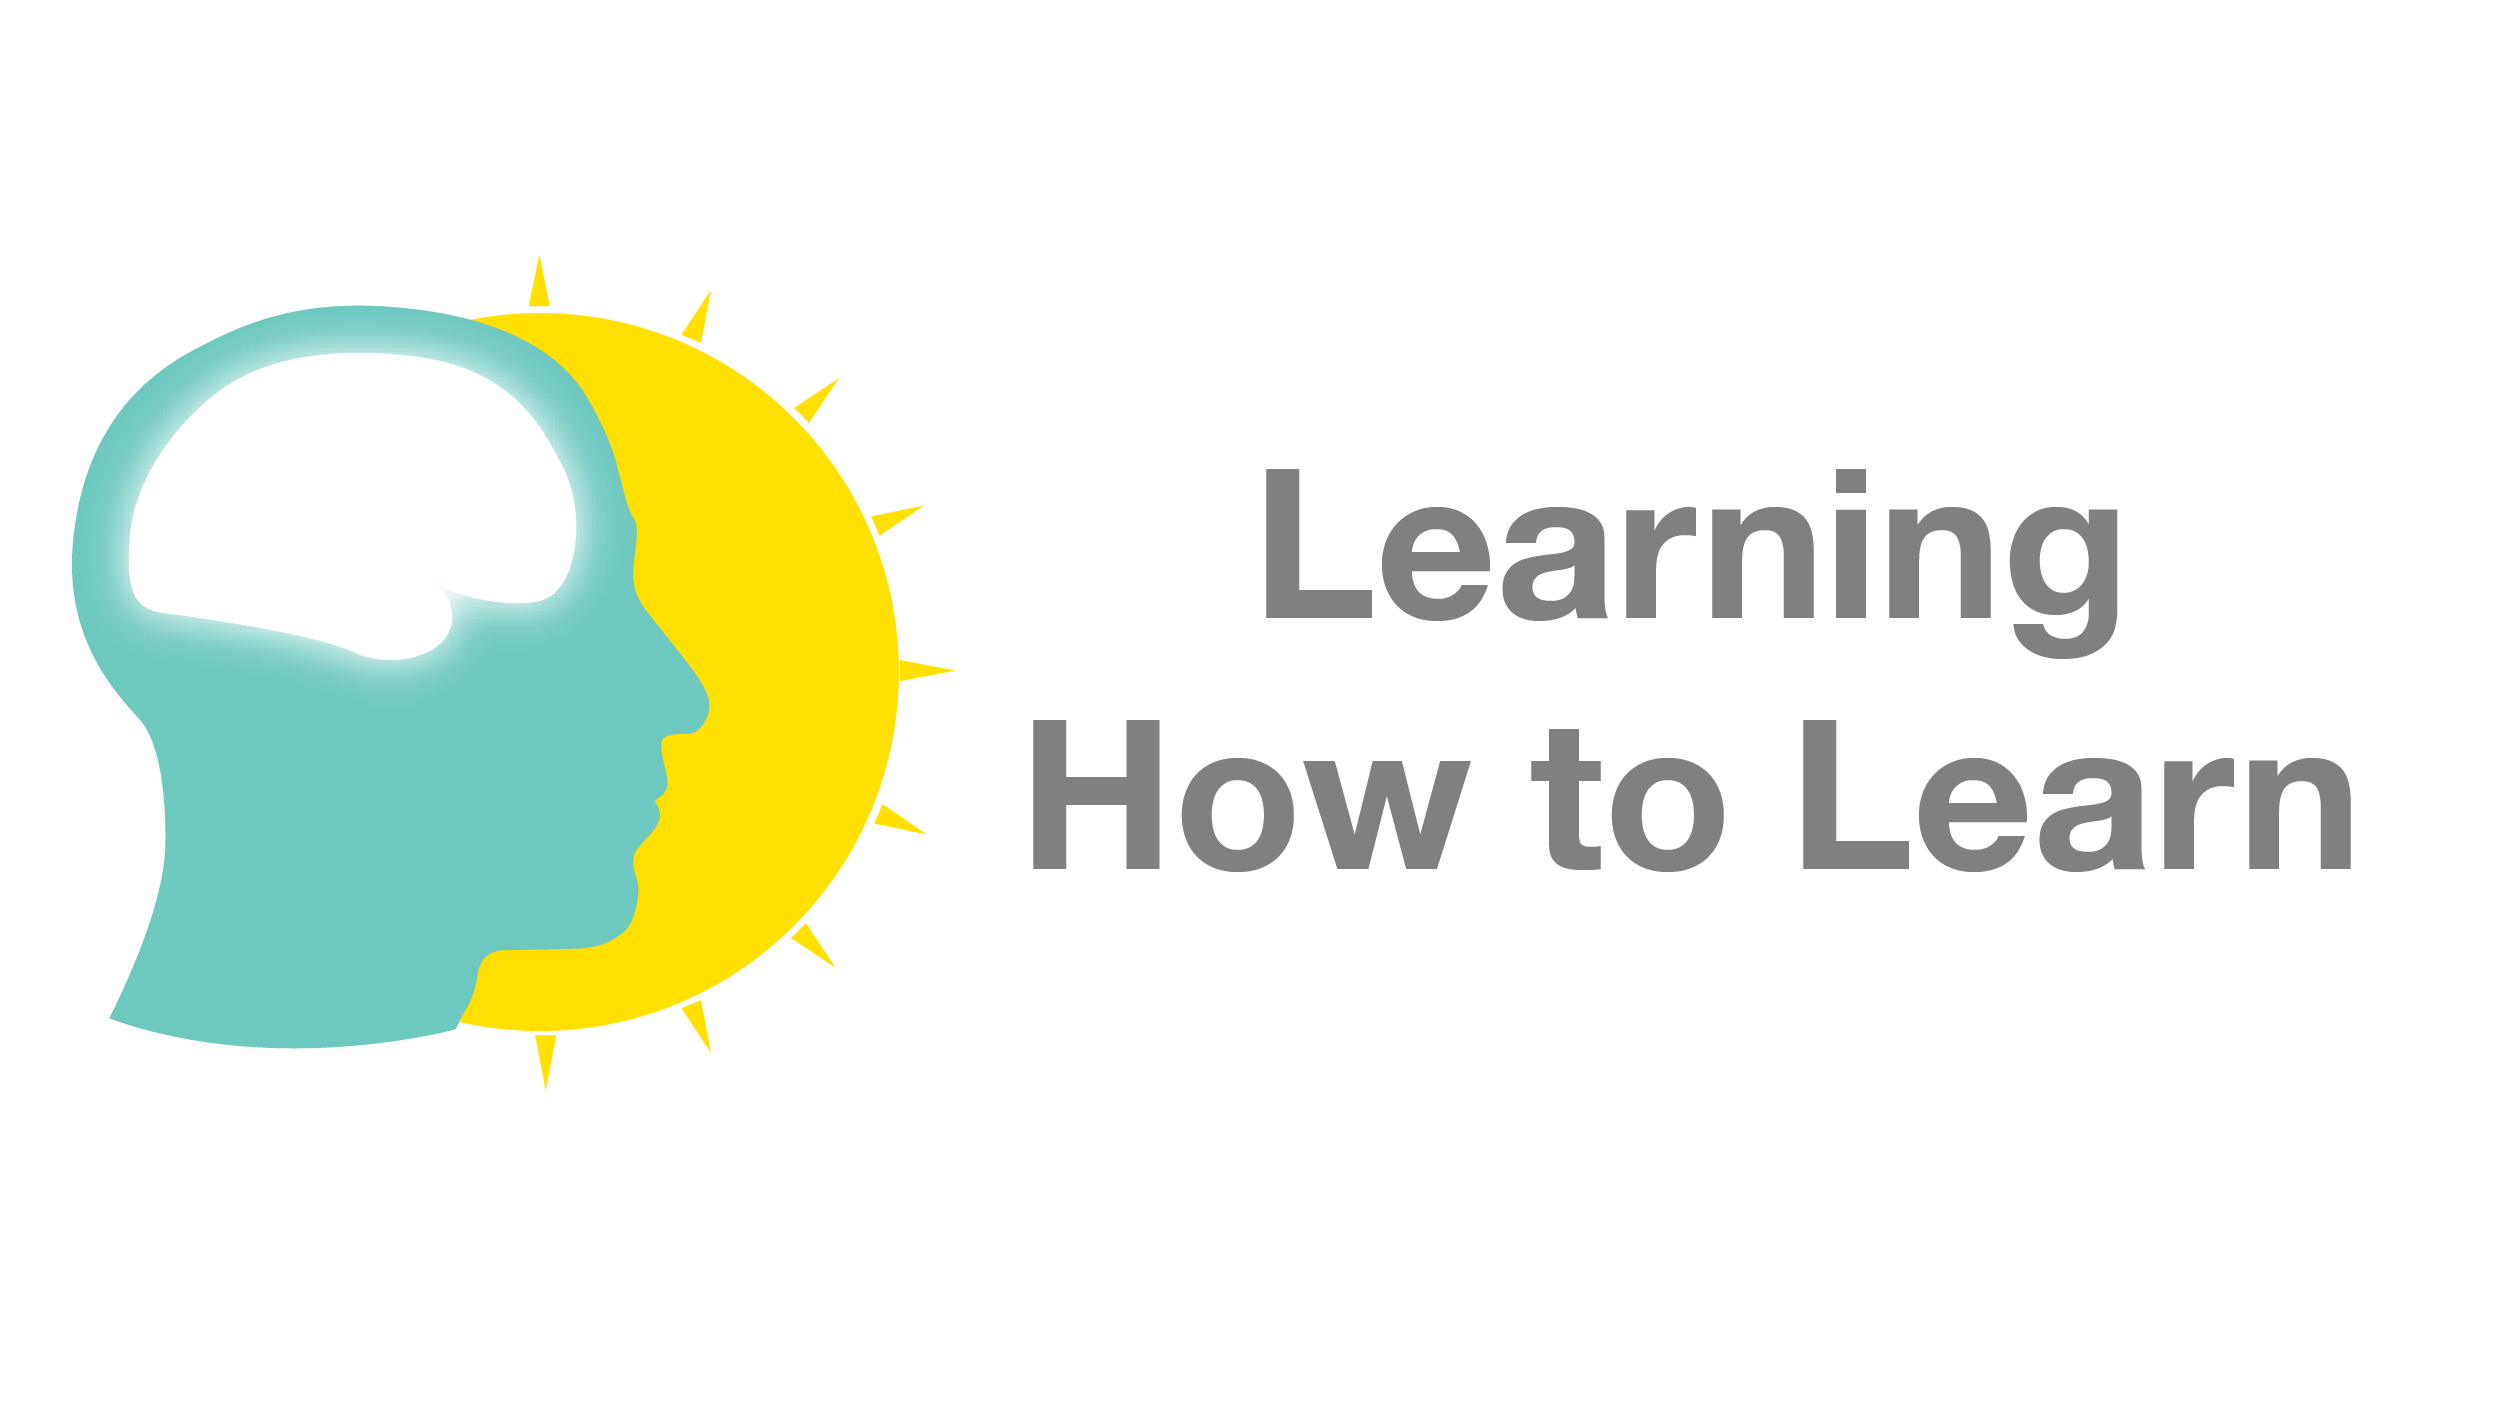 Free course at coursera org -- Learning How to Learn